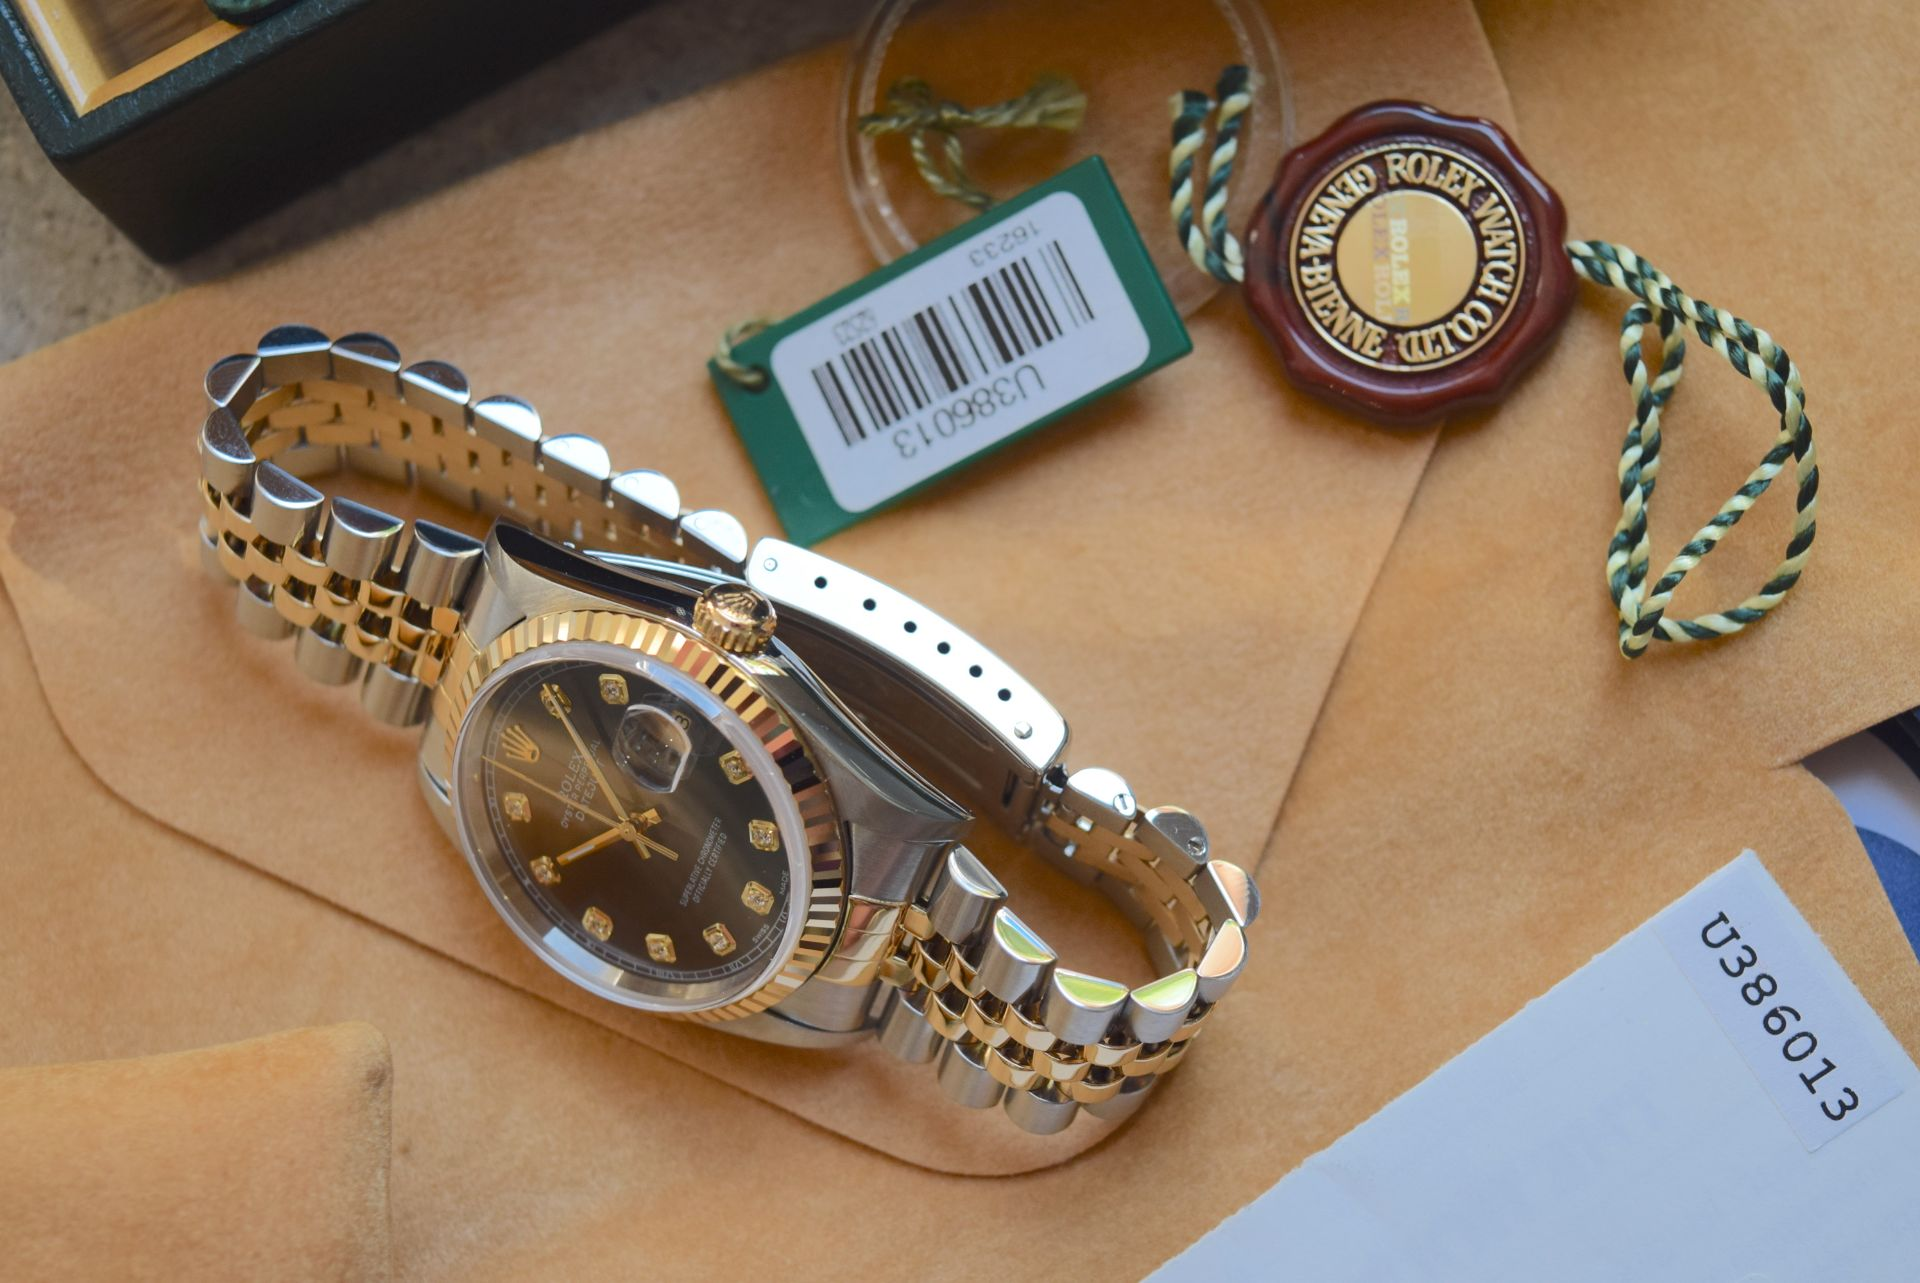 18CT GOLD/ STEEL ROLEX DATEJUST - 36MM, MENS (COMPLETE SET INC BOX, PAPERS, TAGS ETC) - Image 8 of 25